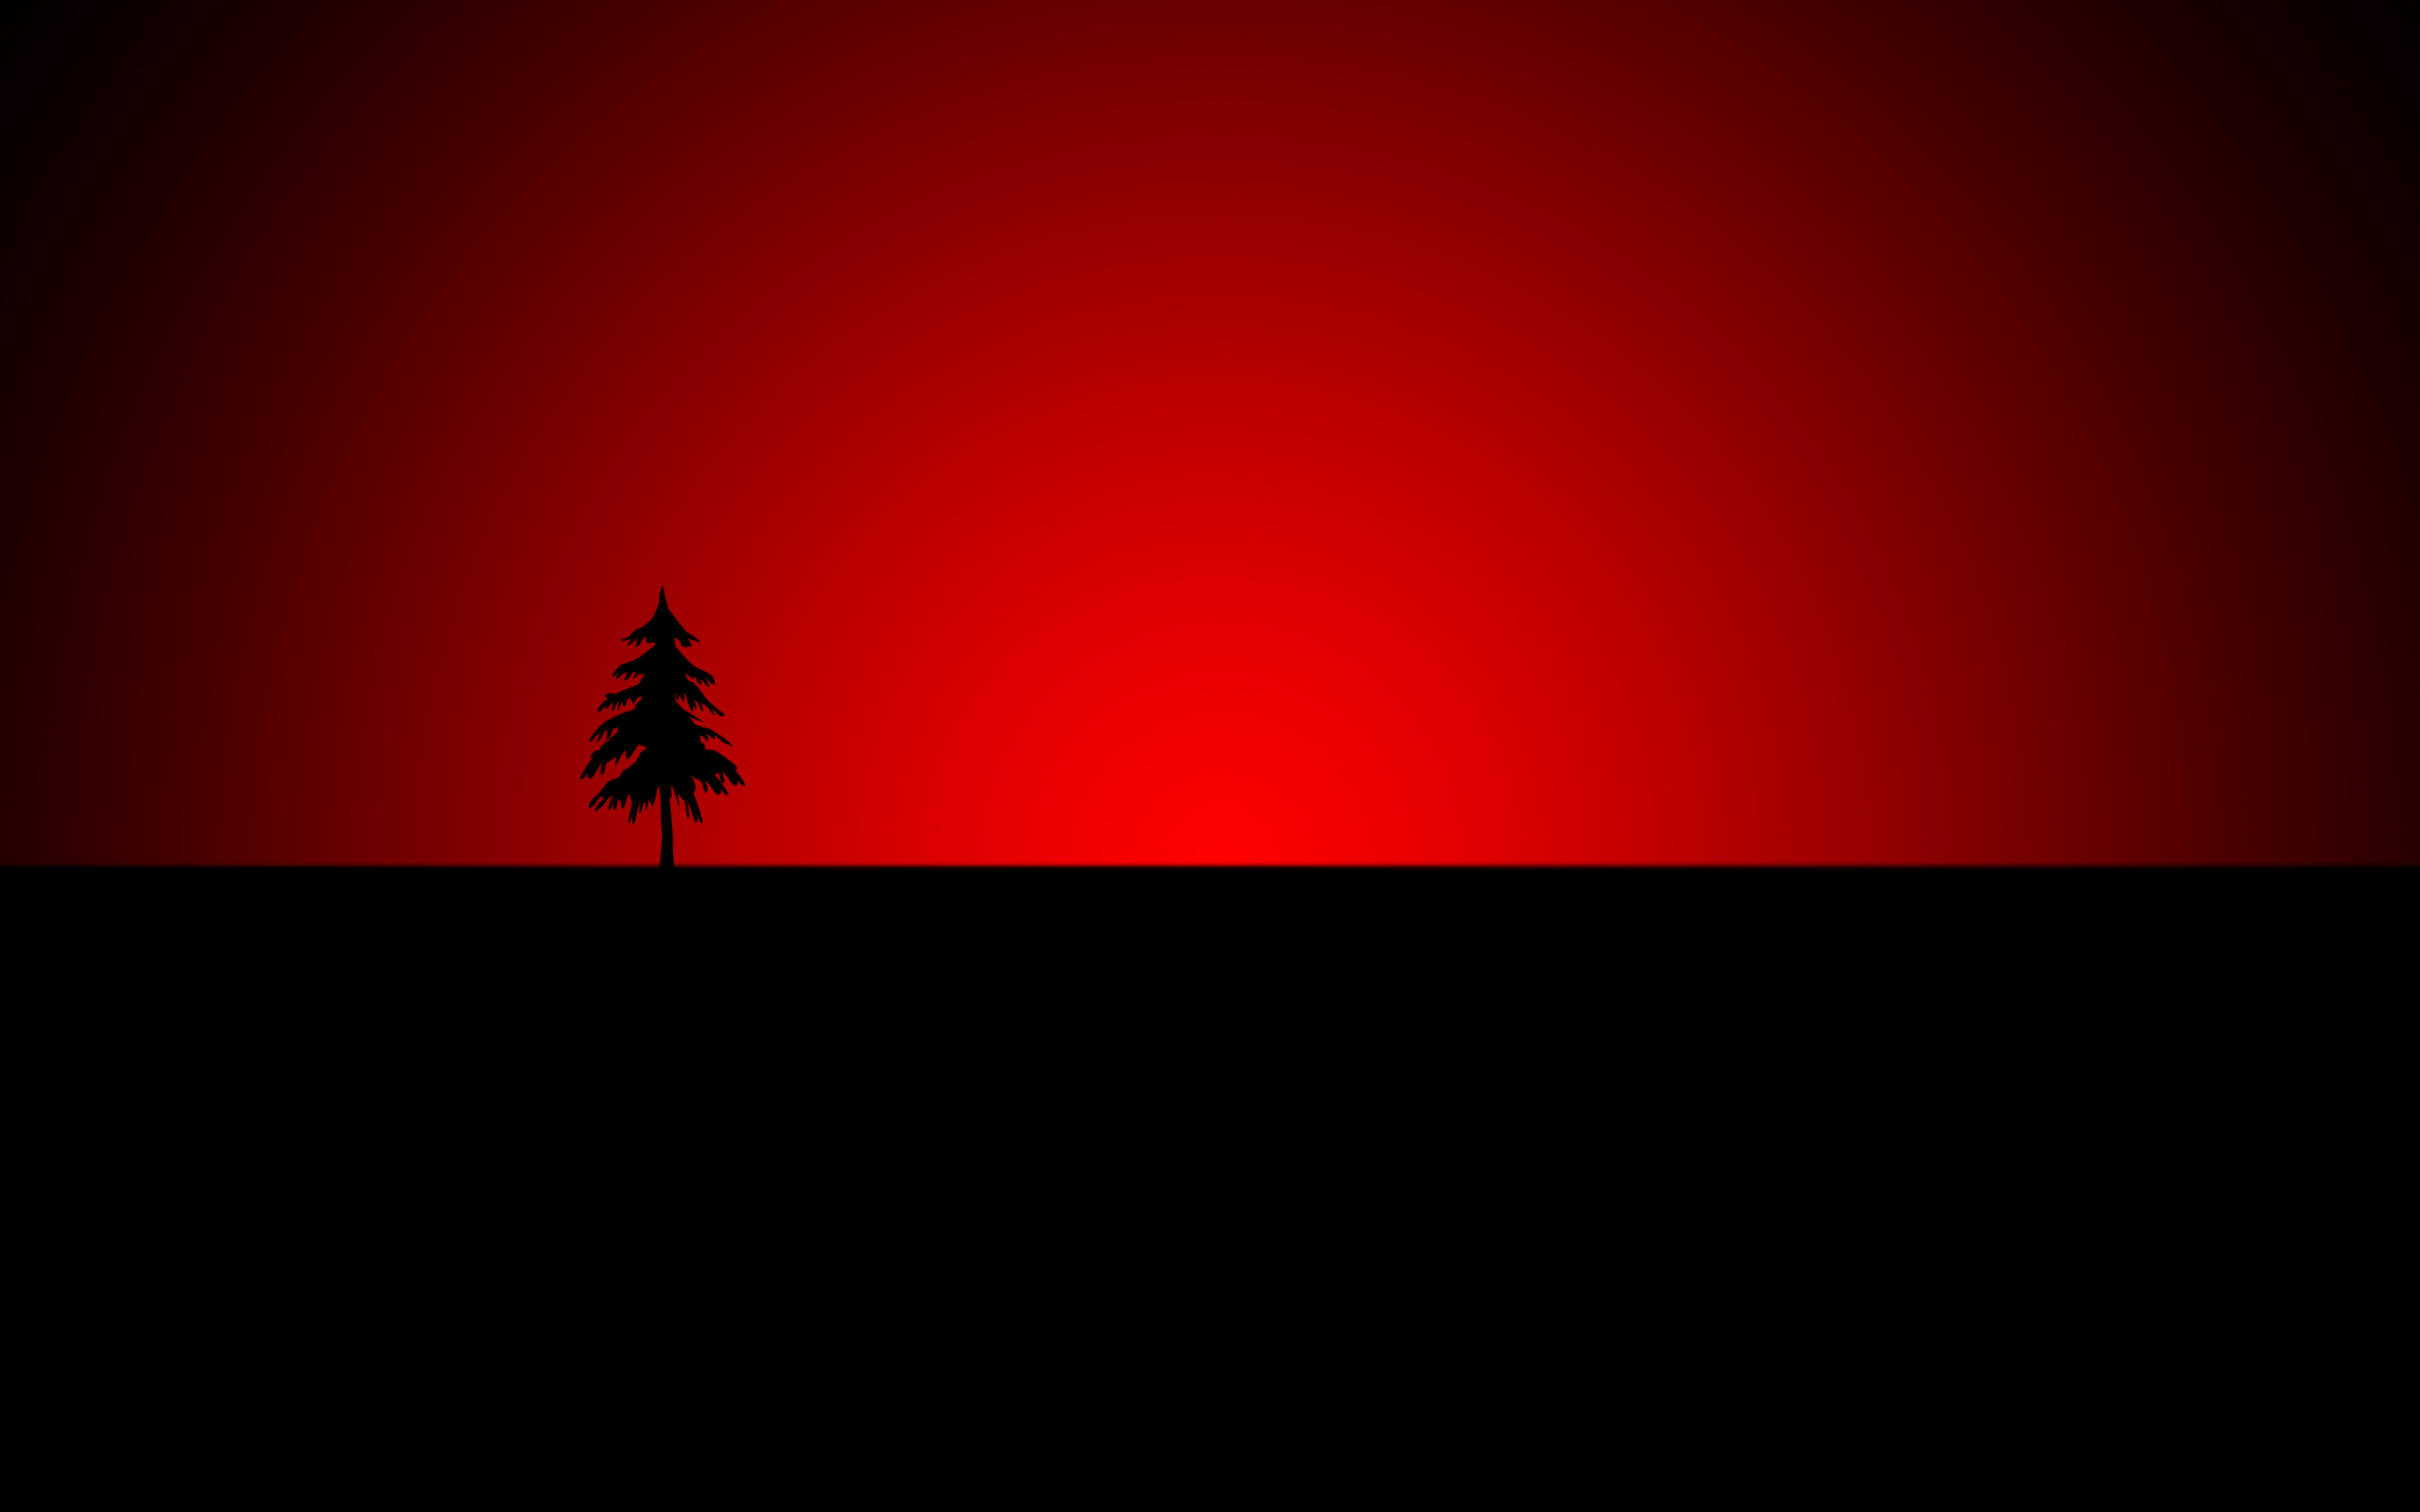 Wallpaper 16 Tree Red and Black Wallpapers 2560x1600